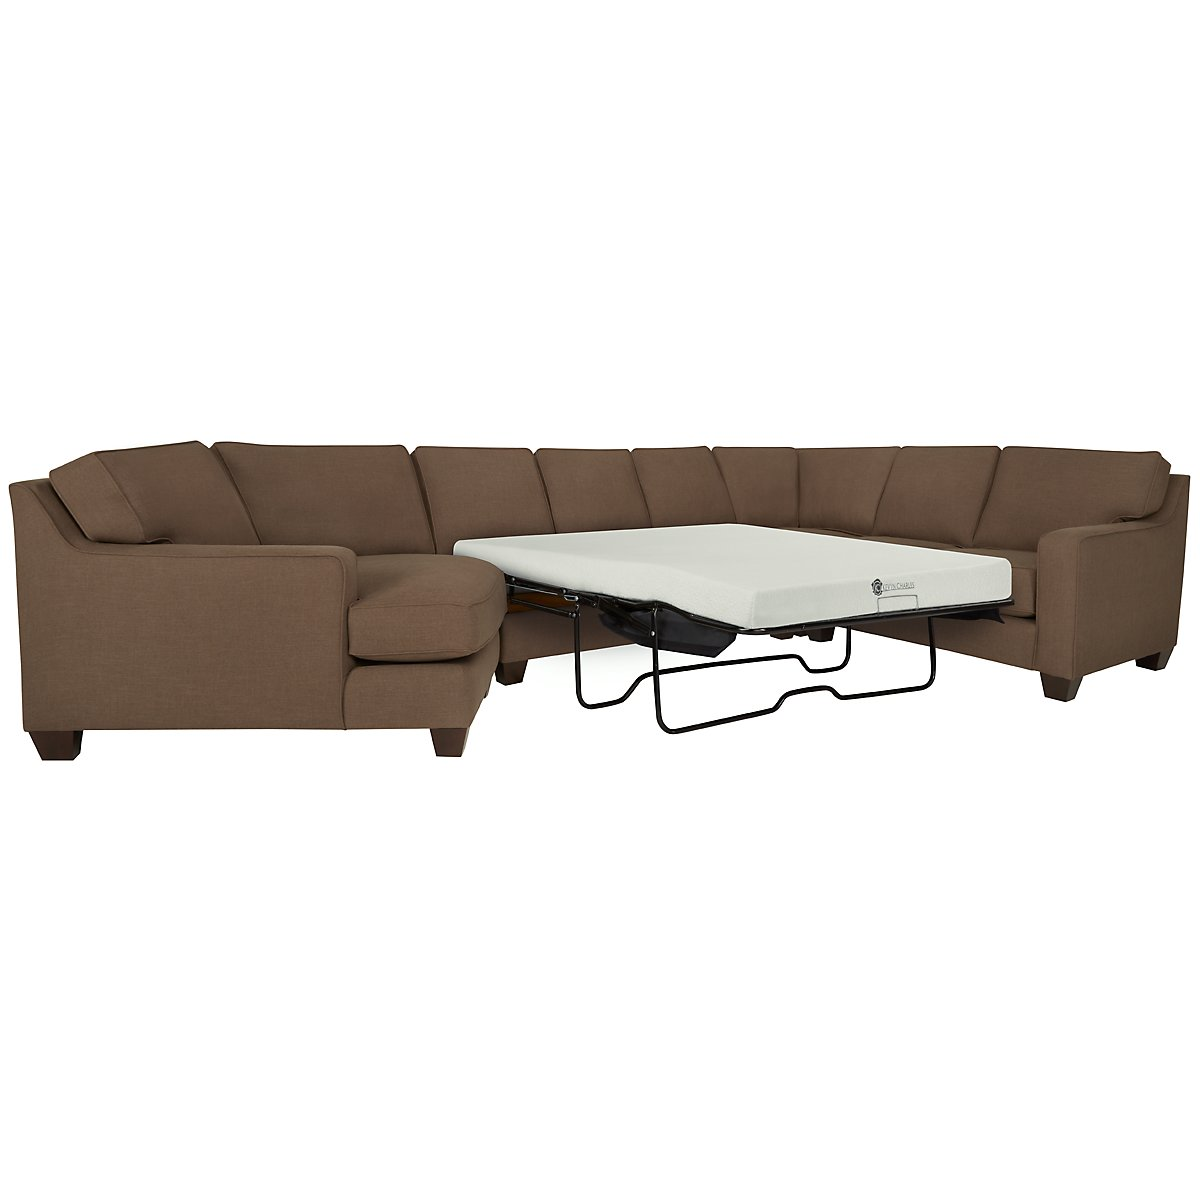 York Dark Brown Fabric Small Left Cuddler Memory Foam Sleeper Sectional